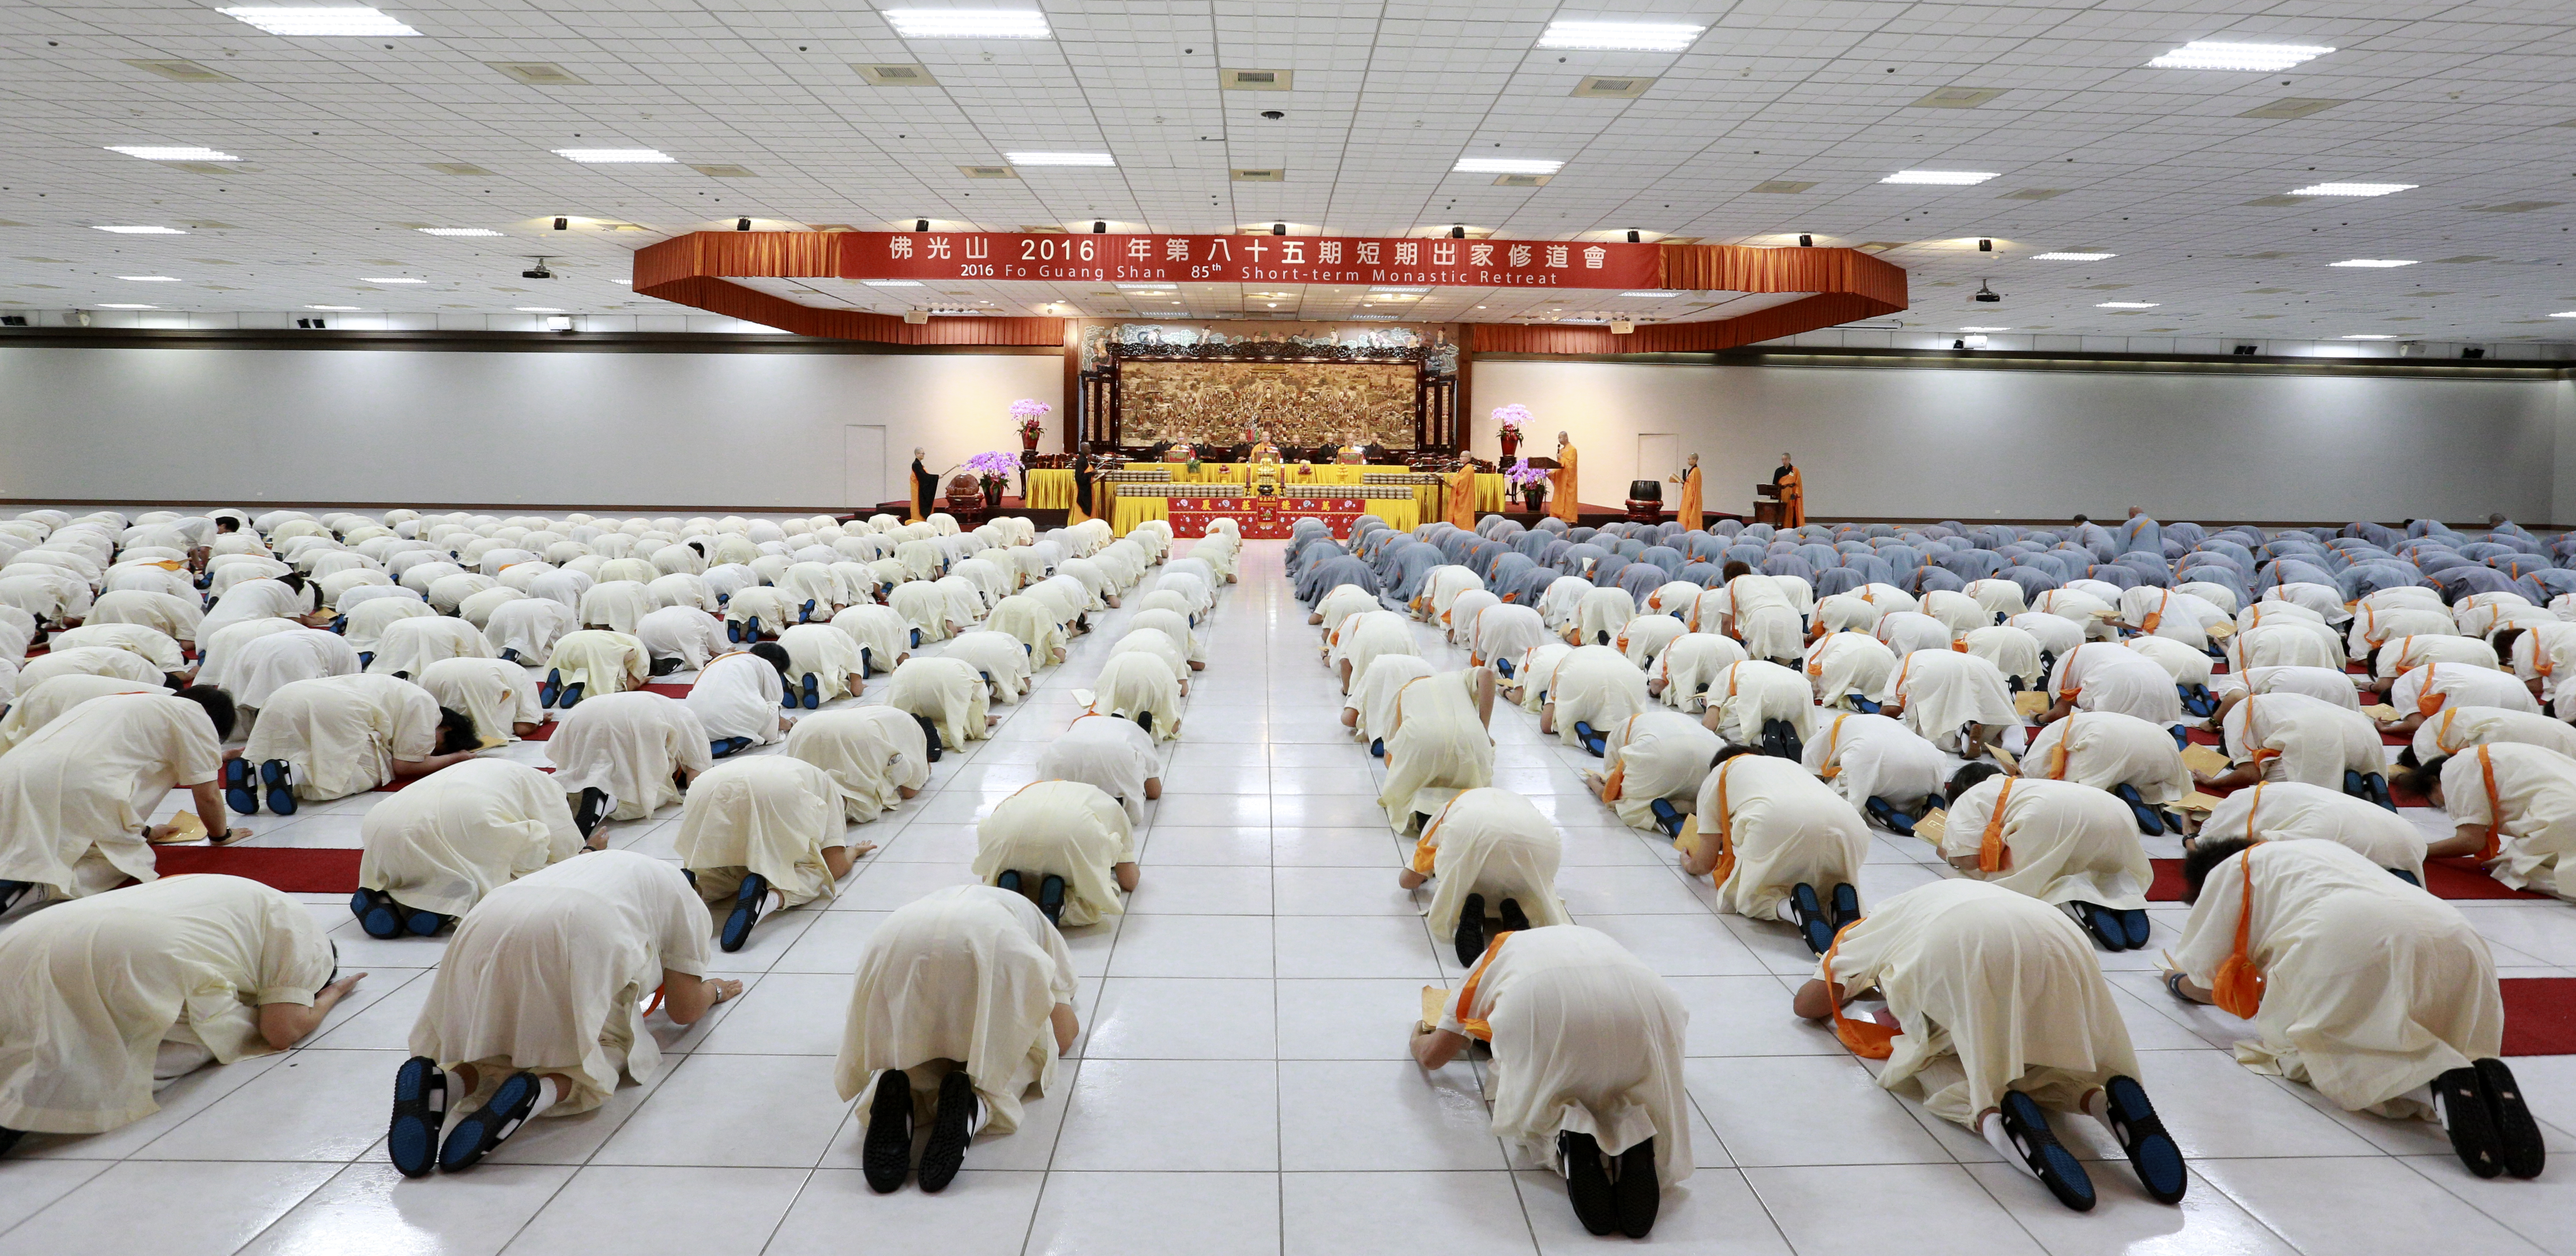 Preceptees prostrate in the main shrine room at Fo Guang Shan Headquarters, Kaohsiung, Taiwan, 2016. Photo by Life News Agency.